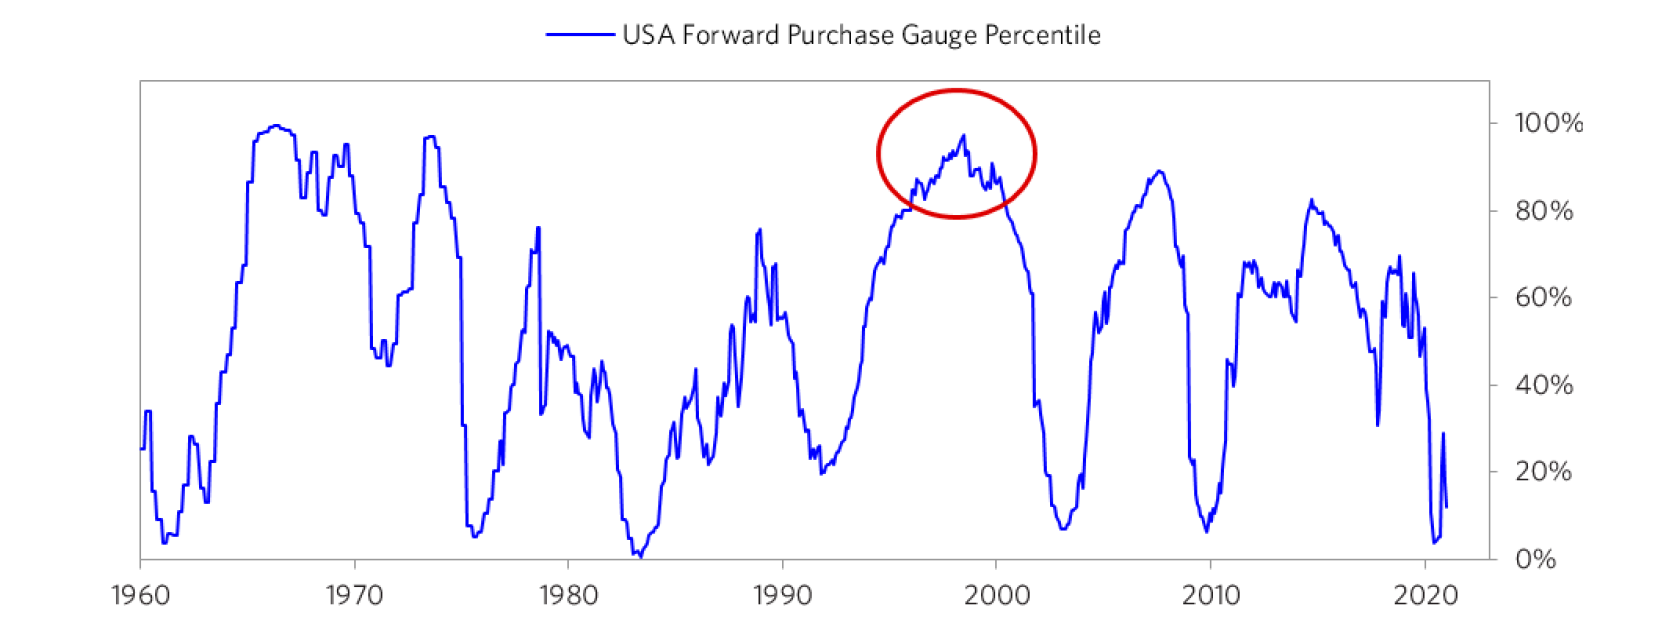 relates to The Money Gusher Says There's No Stocks Bubble Yet